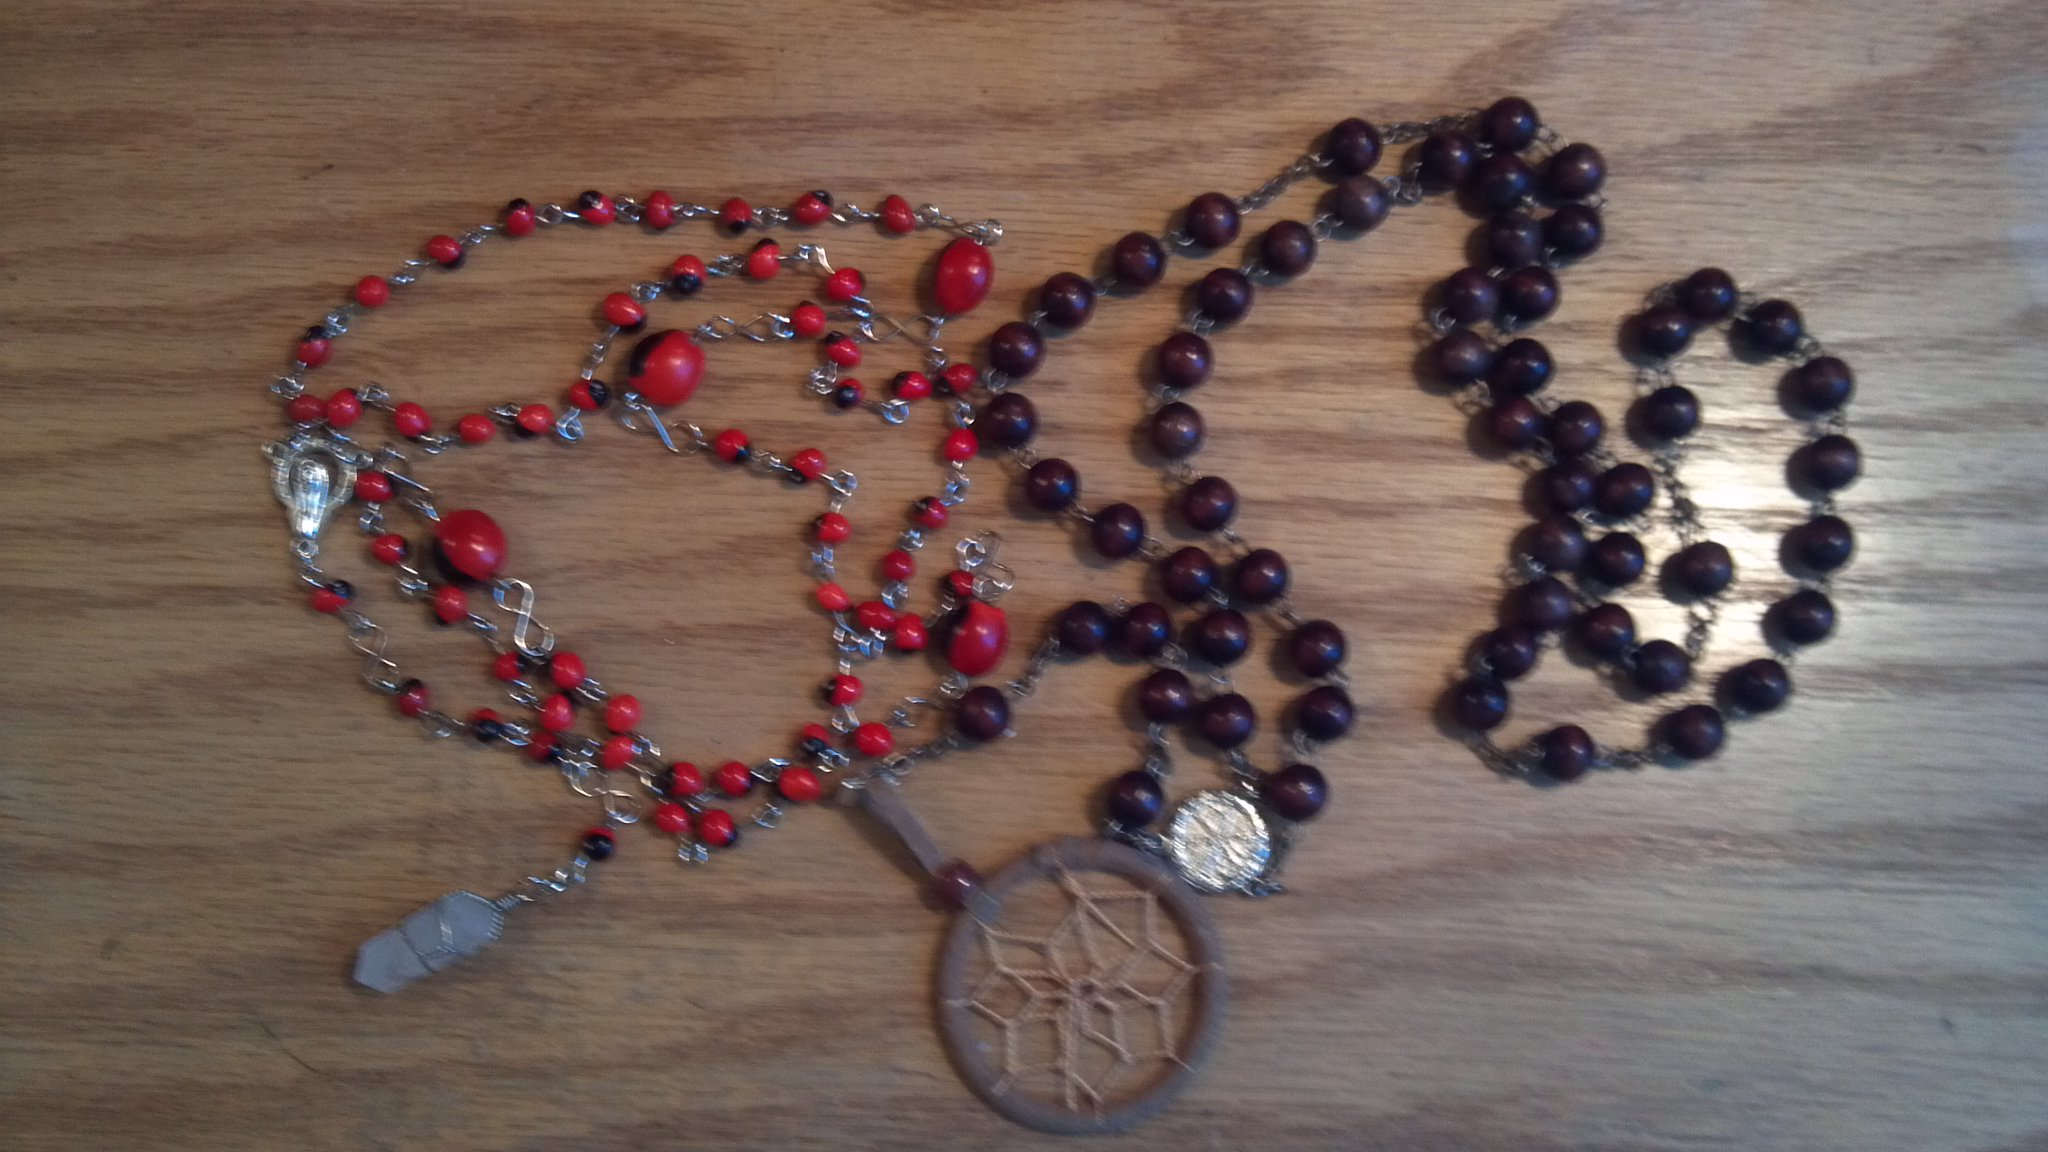 My version of prayer beads... http://t.co/1xCF16Oa